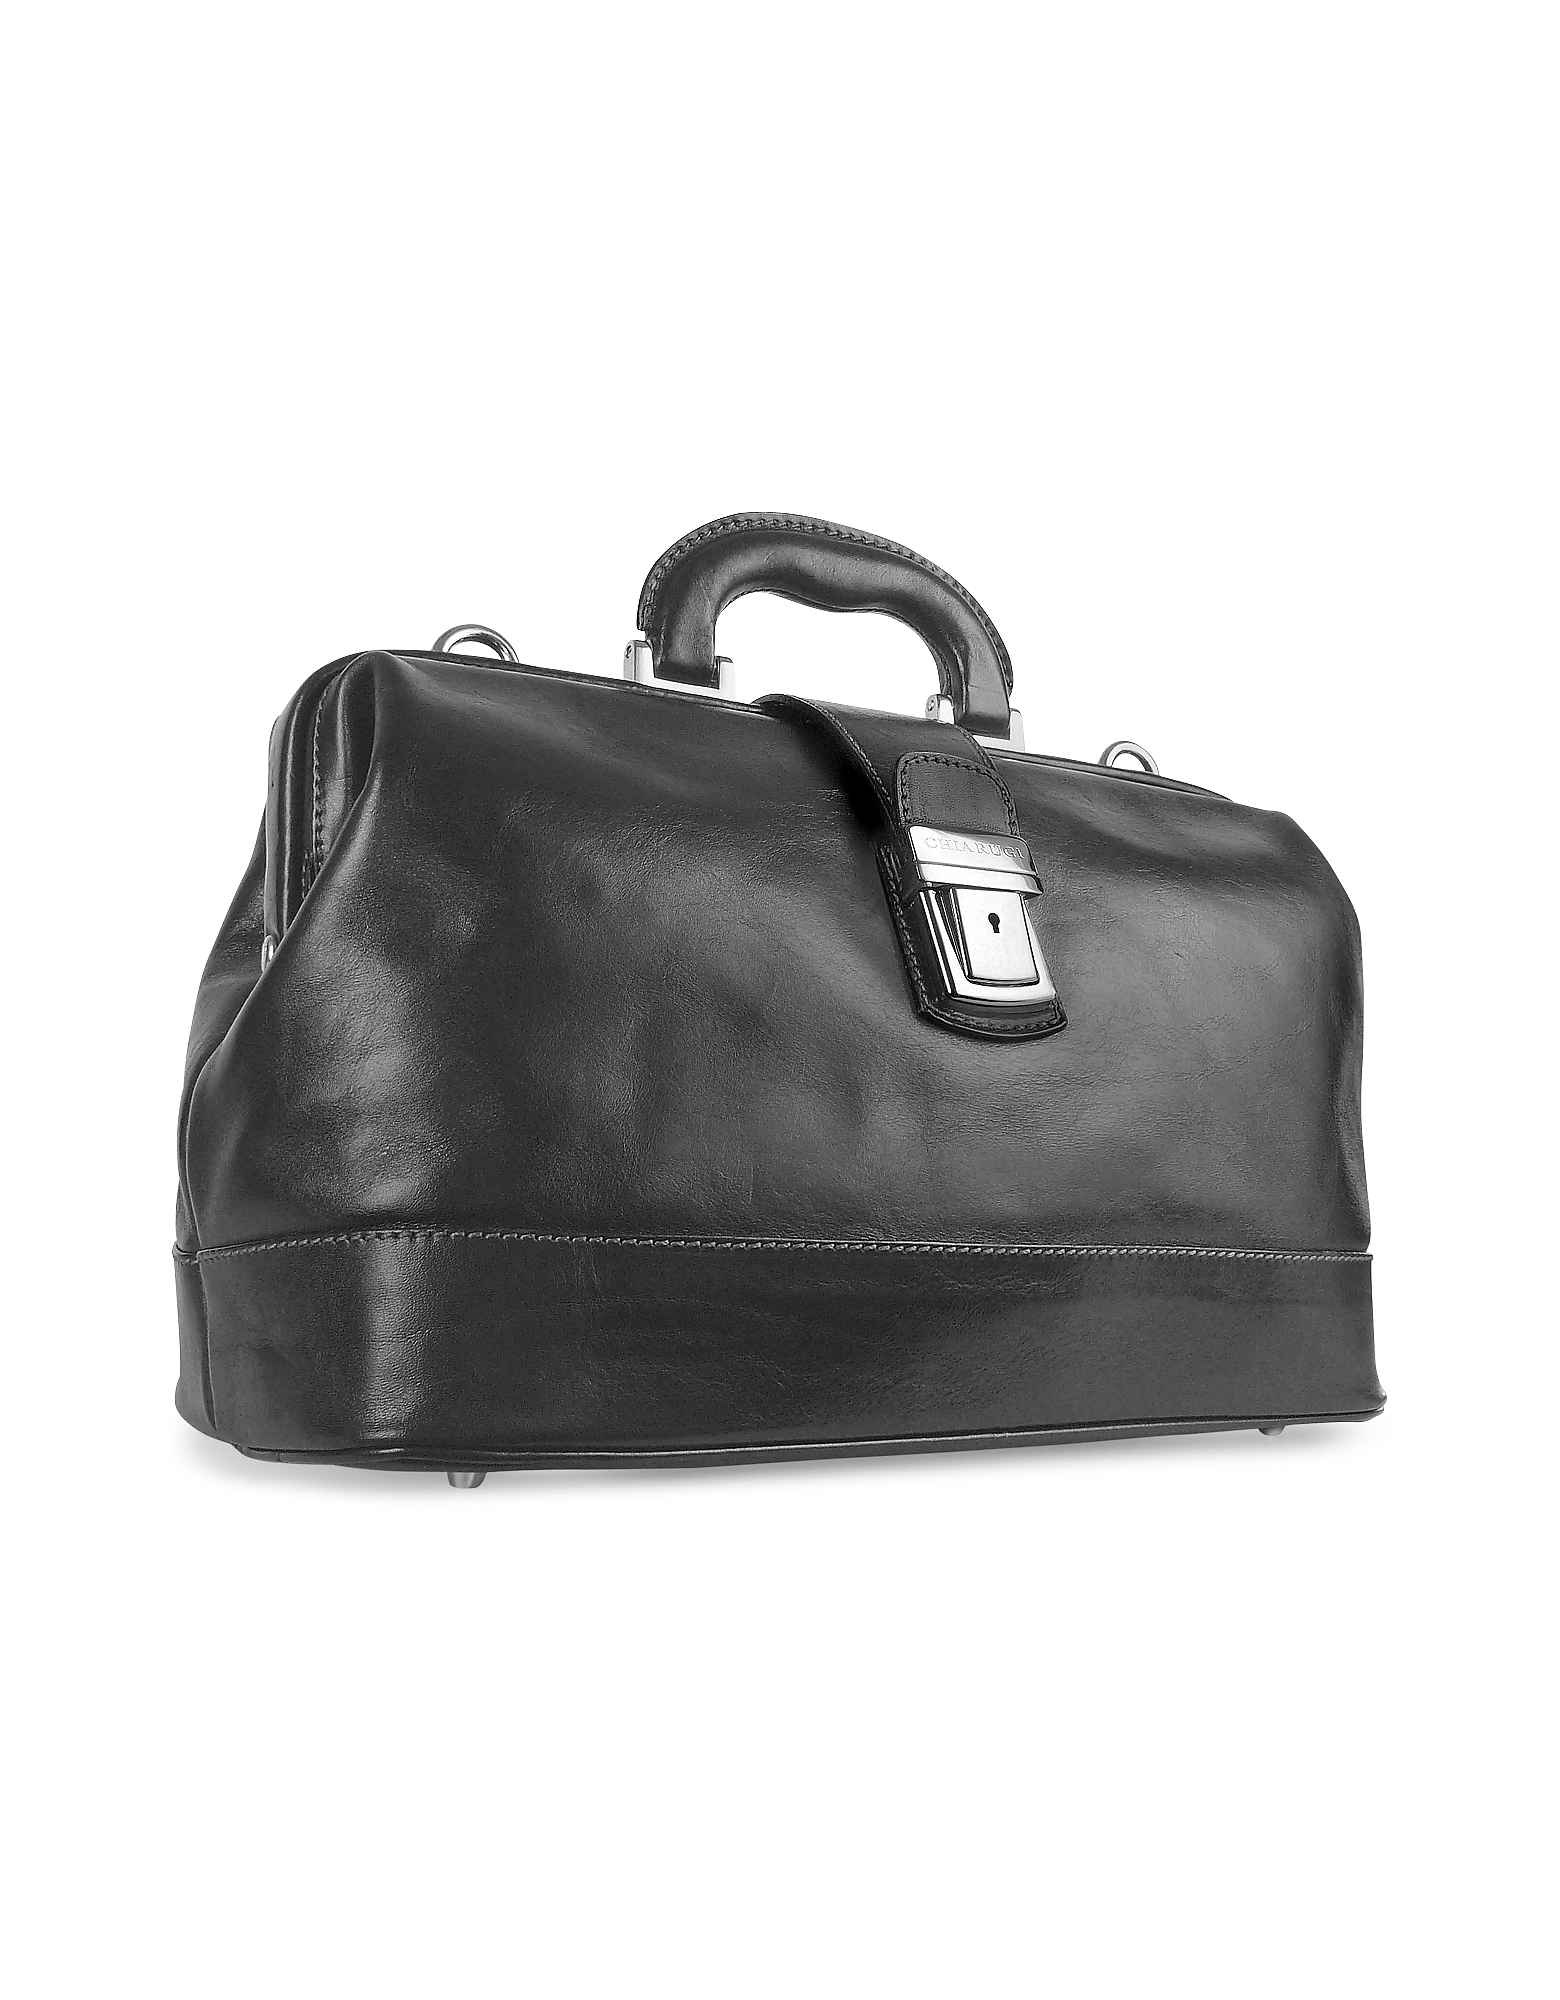 Chiarugi Briefcases, Black Genuine Italian Leather Doctor Bag